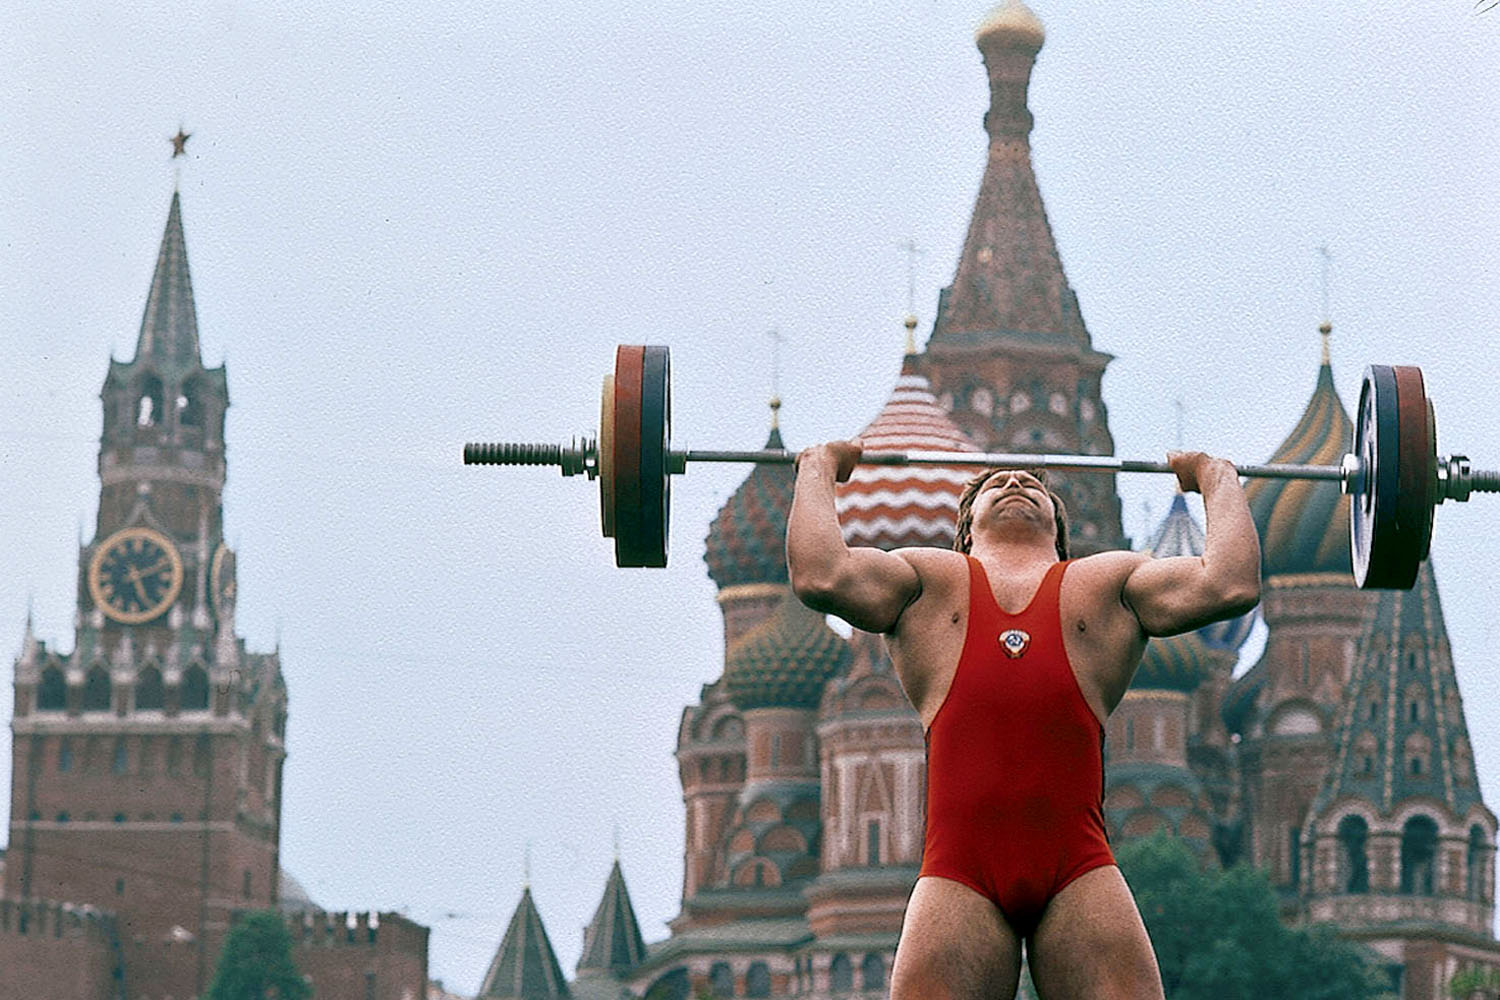 Weightlifter Viktor Mosibit poses in front of St. Basil's Cathedral in Moscow's Red Square.